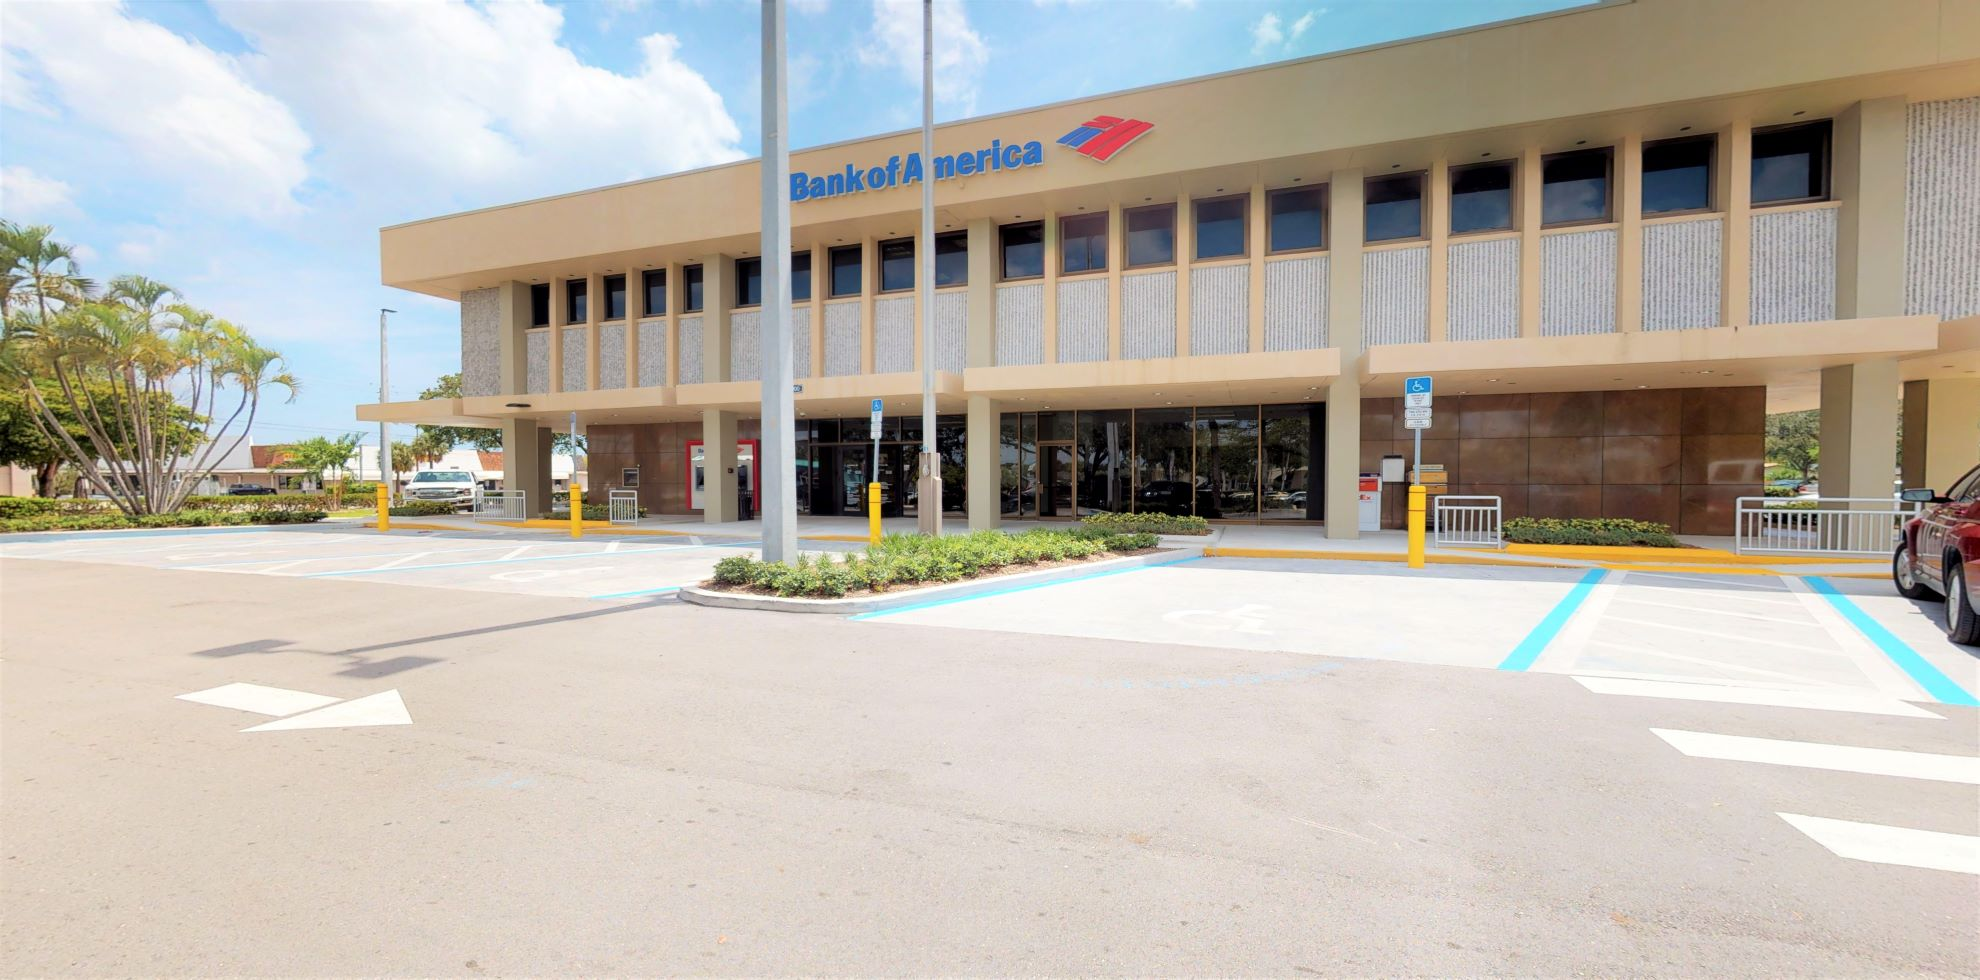 Bank of America financial center with drive-thru ATM | 1000 S Federal Hwy, Deerfield Beach, FL 33441